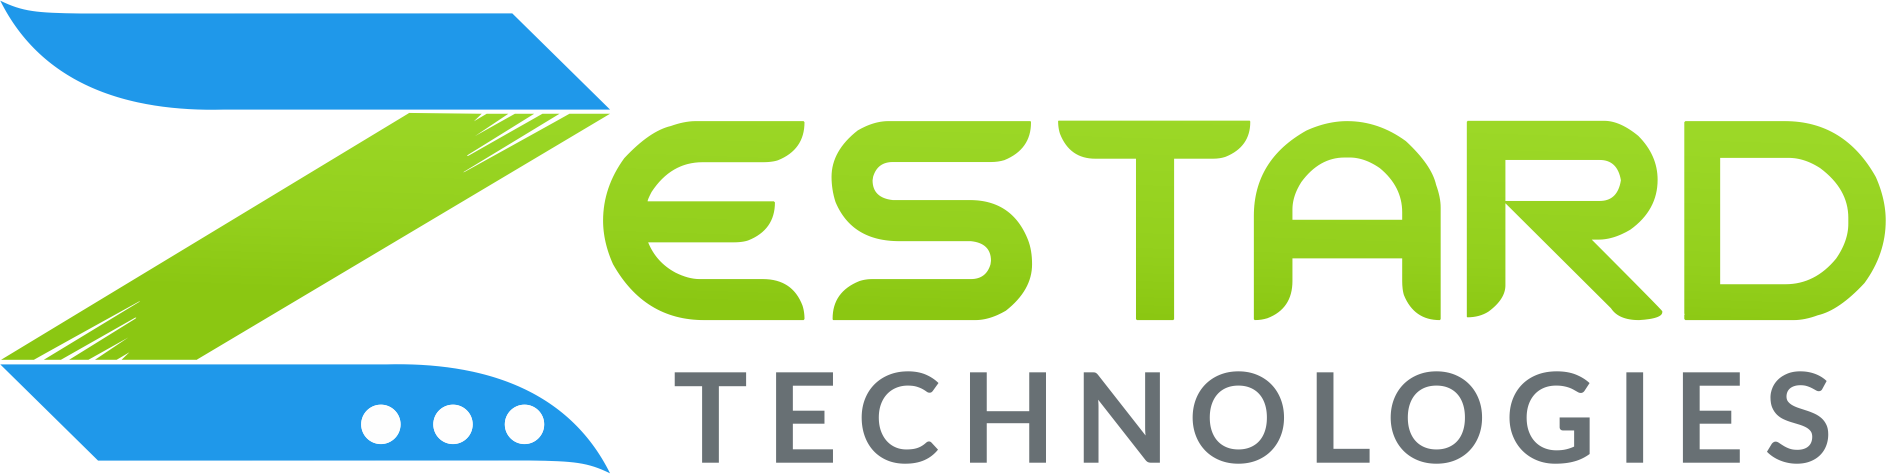 Zestard Technologies Pvt Ltd - Digital Marketing company logo